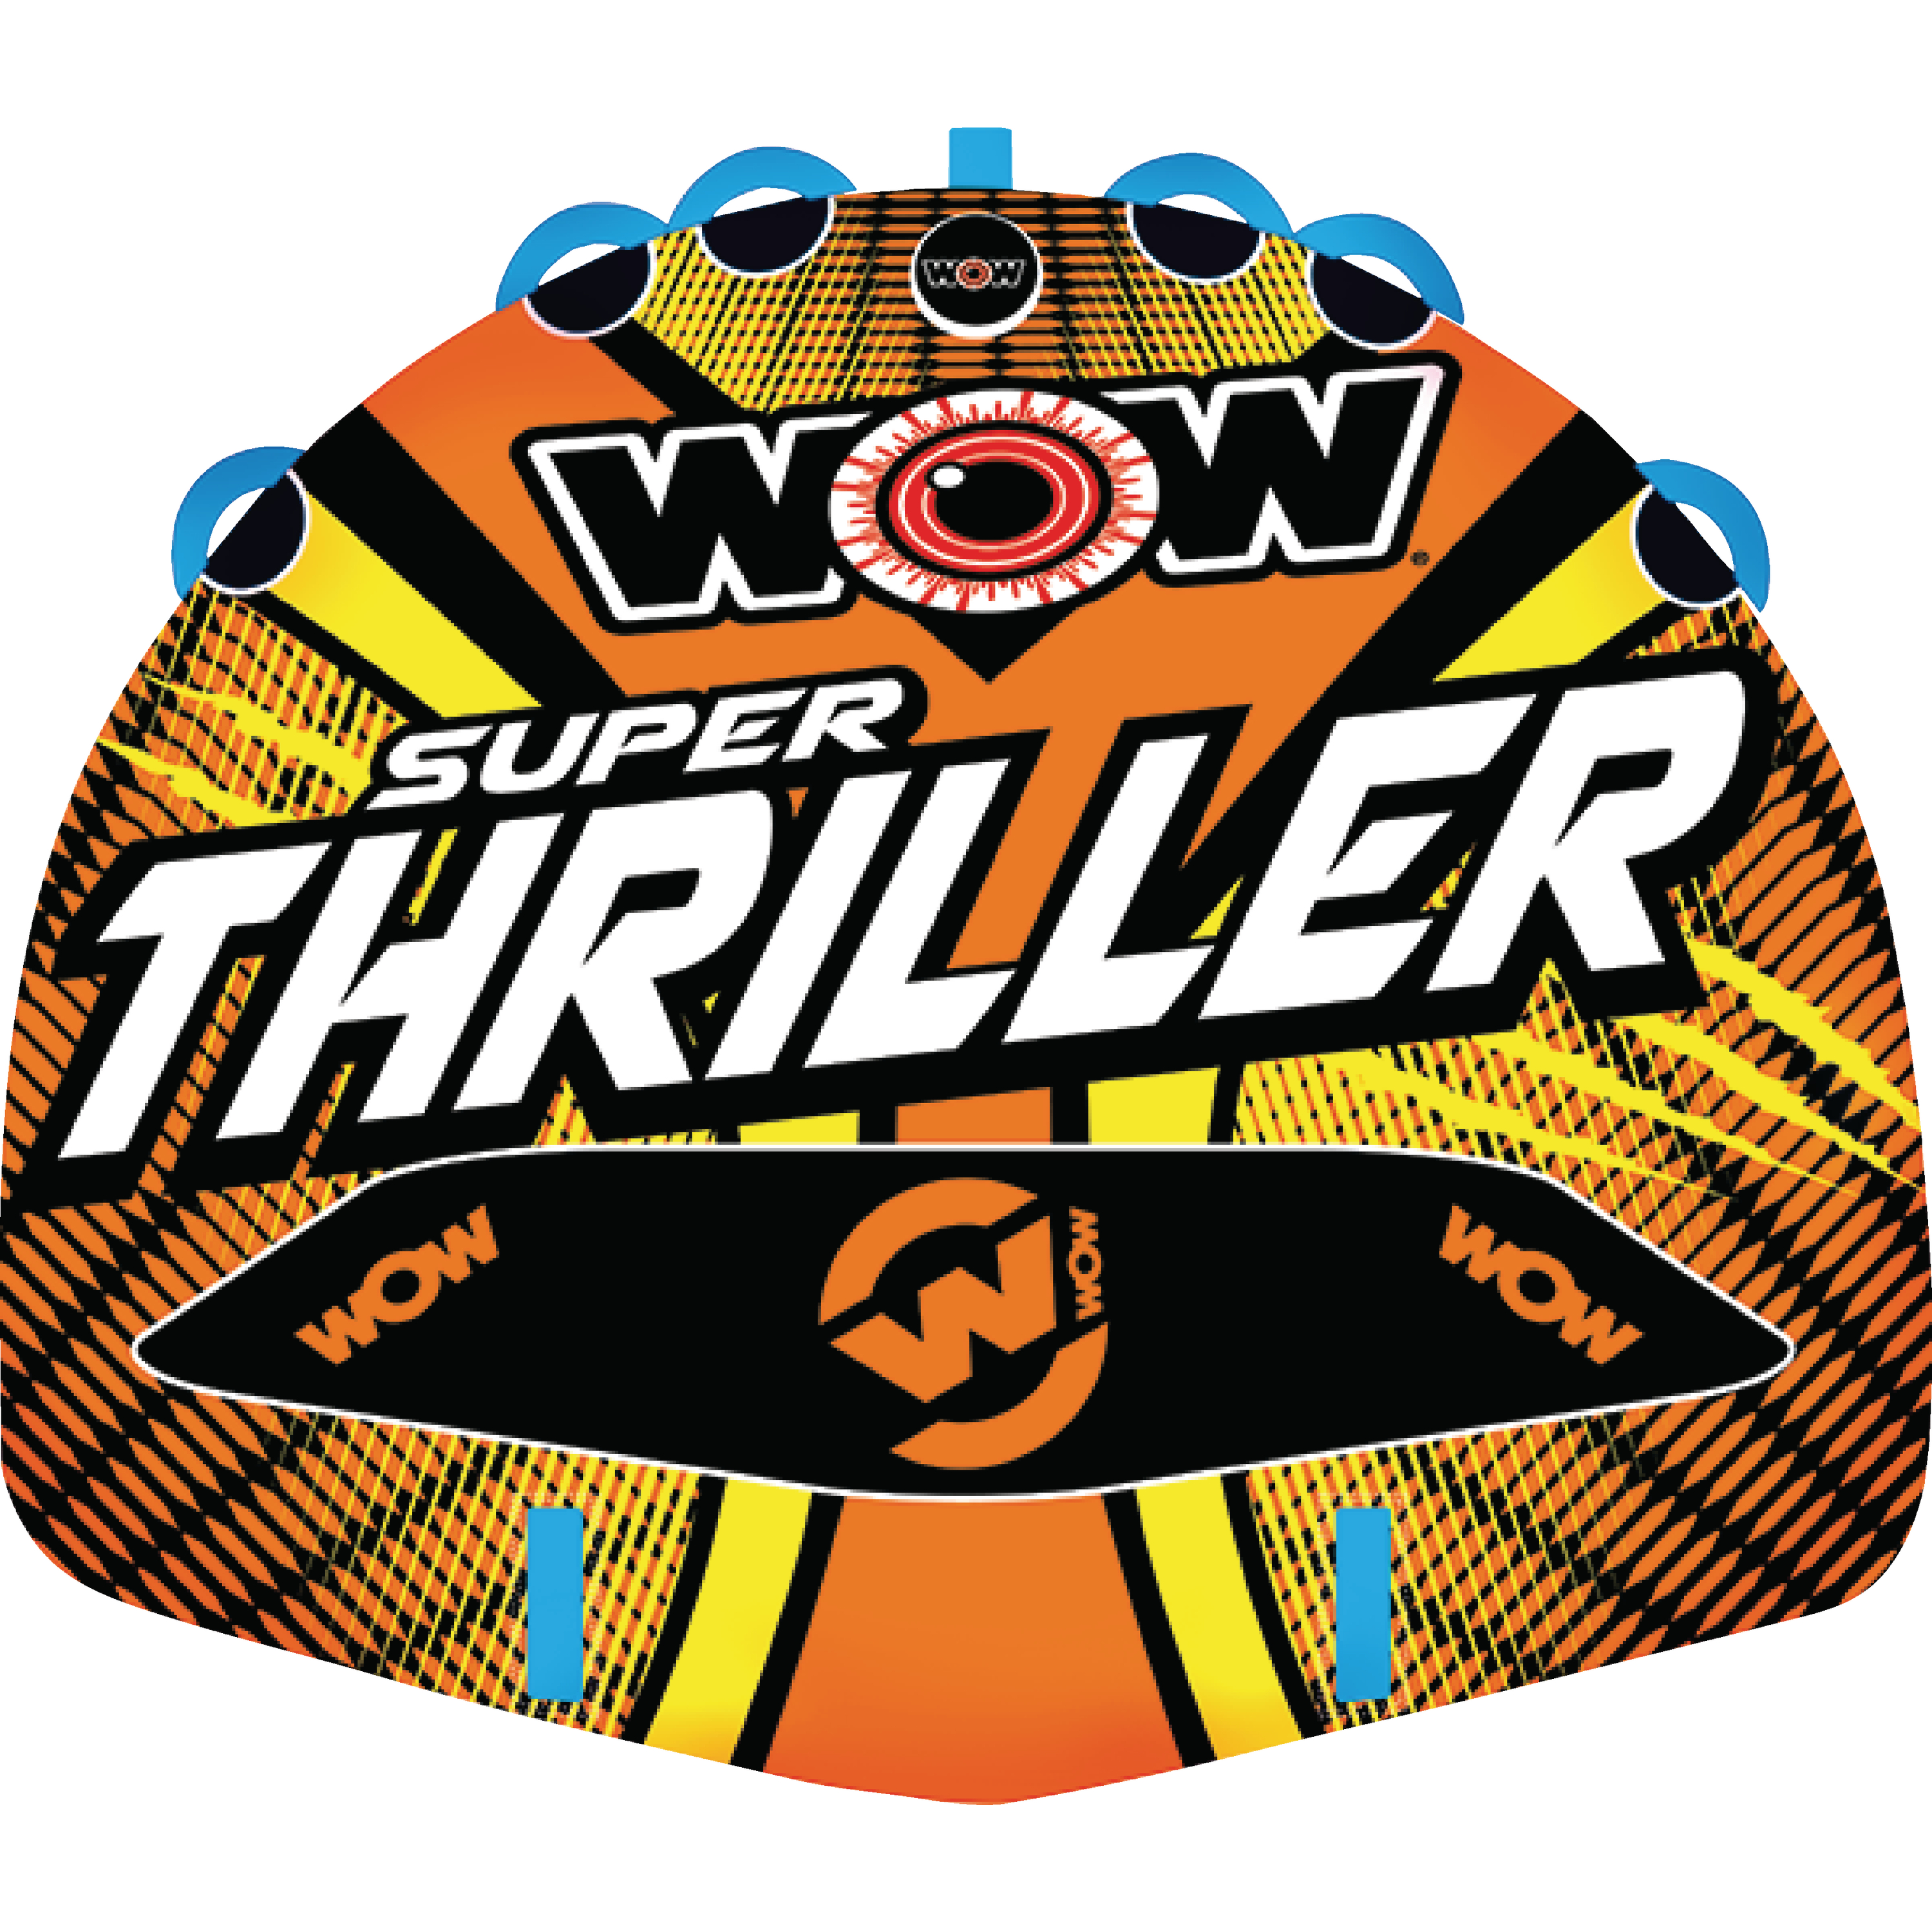 WOW 181020 Super Thriller Inflatable Towable for 1-3 Riders by WOW Watersports USA